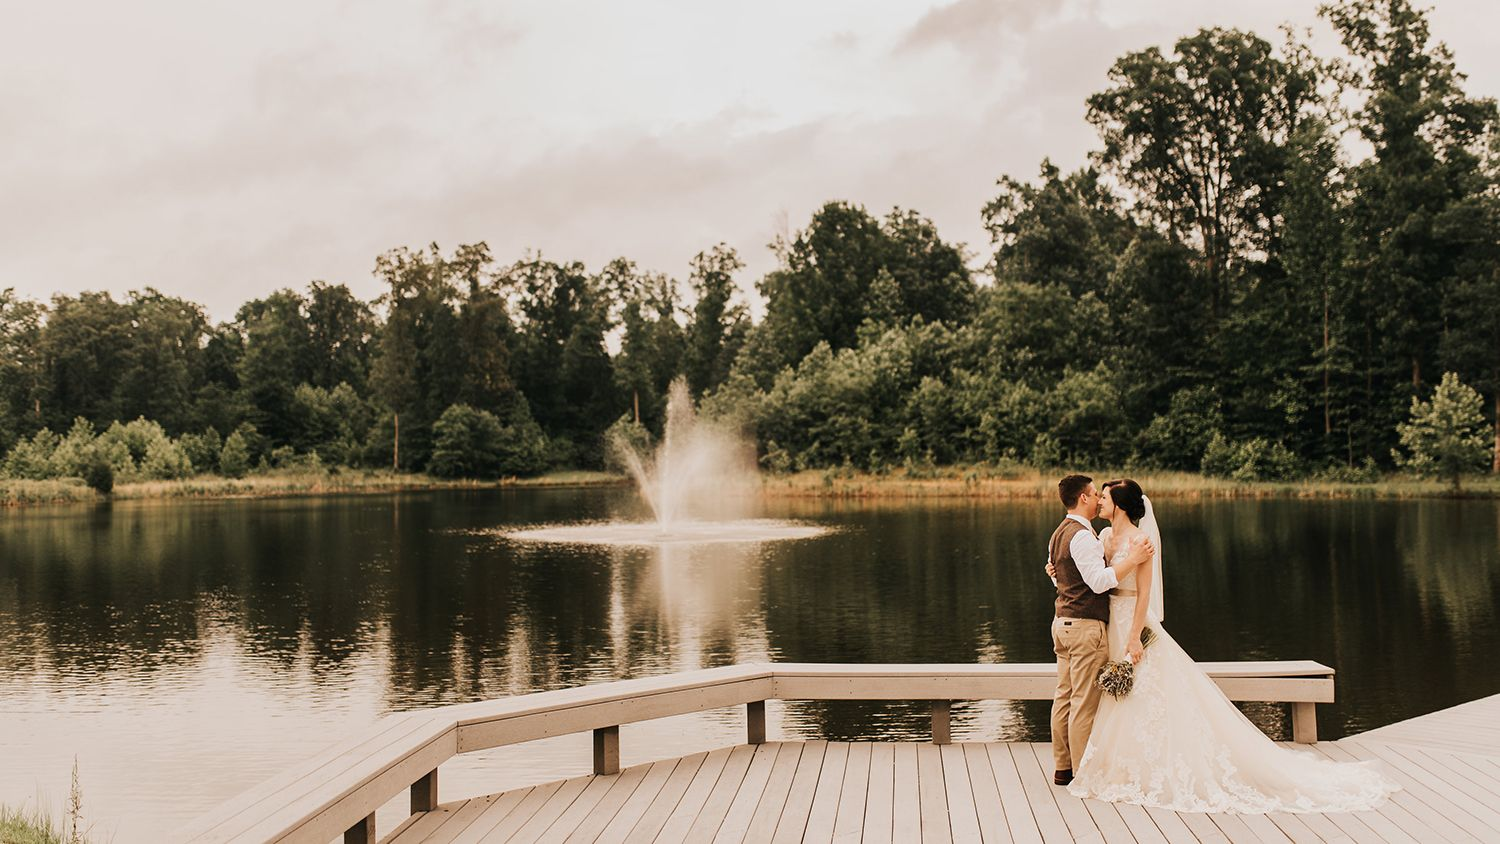 Bride And Groom At Pond With Fountain